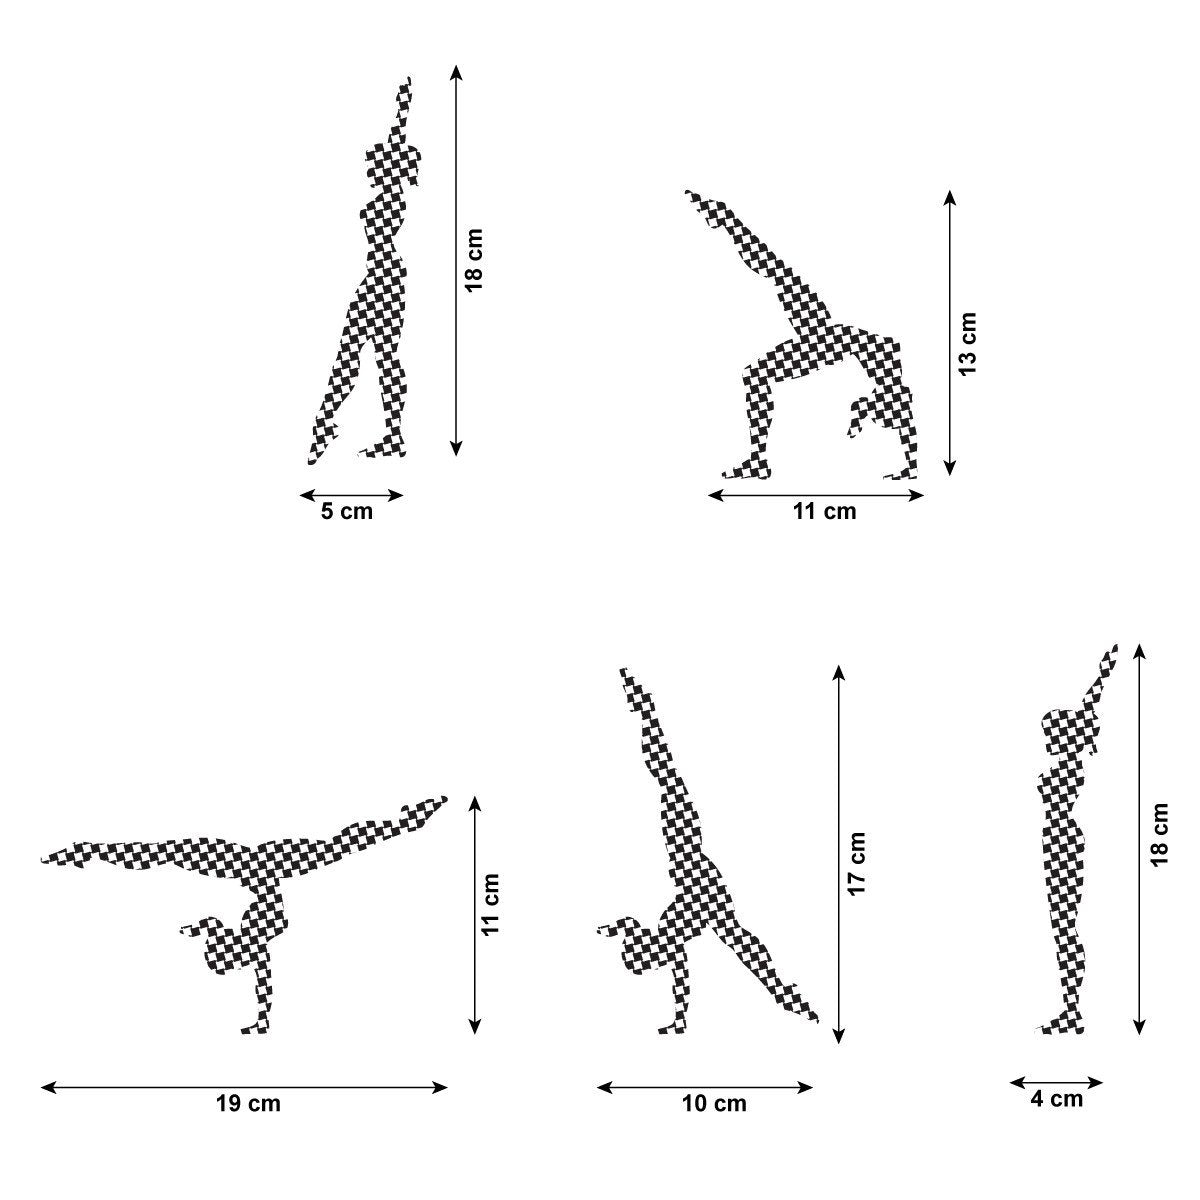 CraftStar Walkover Gymnast Stencil Set - Size Guide